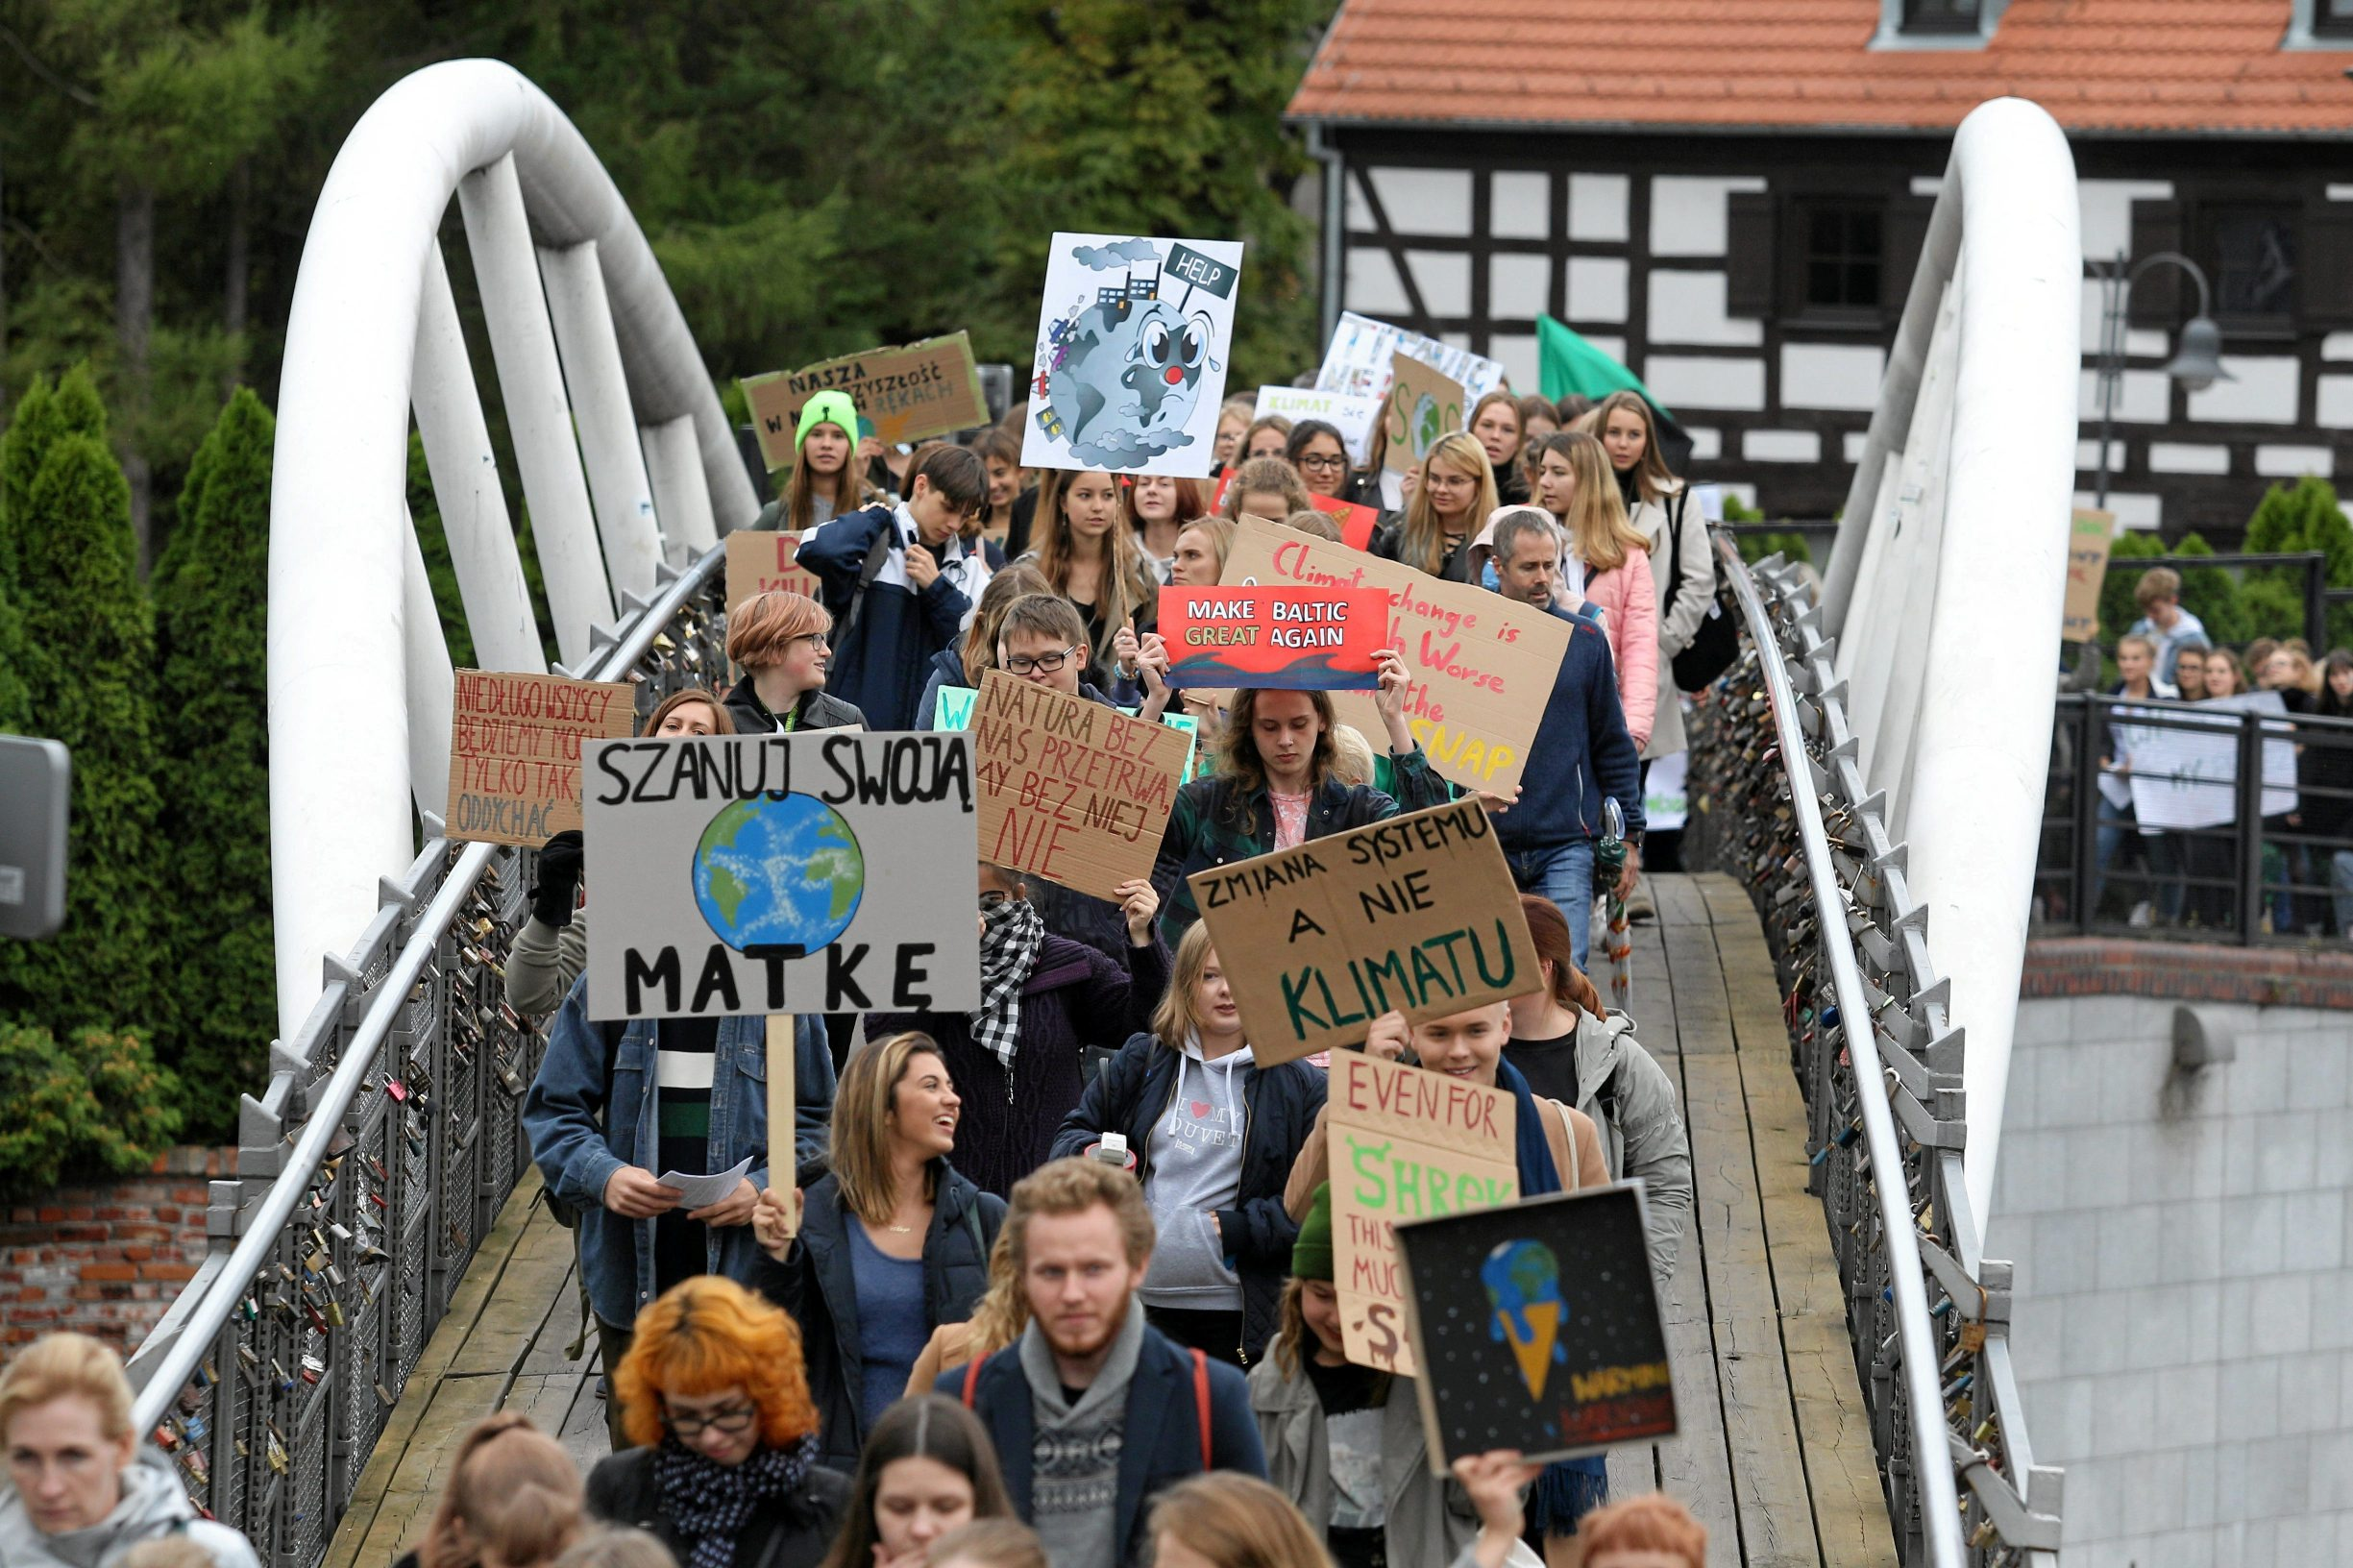 Young activists take part in an environmental demonstration, part of the Global Climate Strike, in Bydgoszcz, Poland September 20, 2019. Roman Bosiacki/Agencja Gazeta via REUTERS  ATTENTION EDITORS - THIS IMAGE WAS PROVIDED BY A THIRD PARTY. POLAND OUT. NO COMMERCIAL OR EDITORIAL SALES IN POLAND.